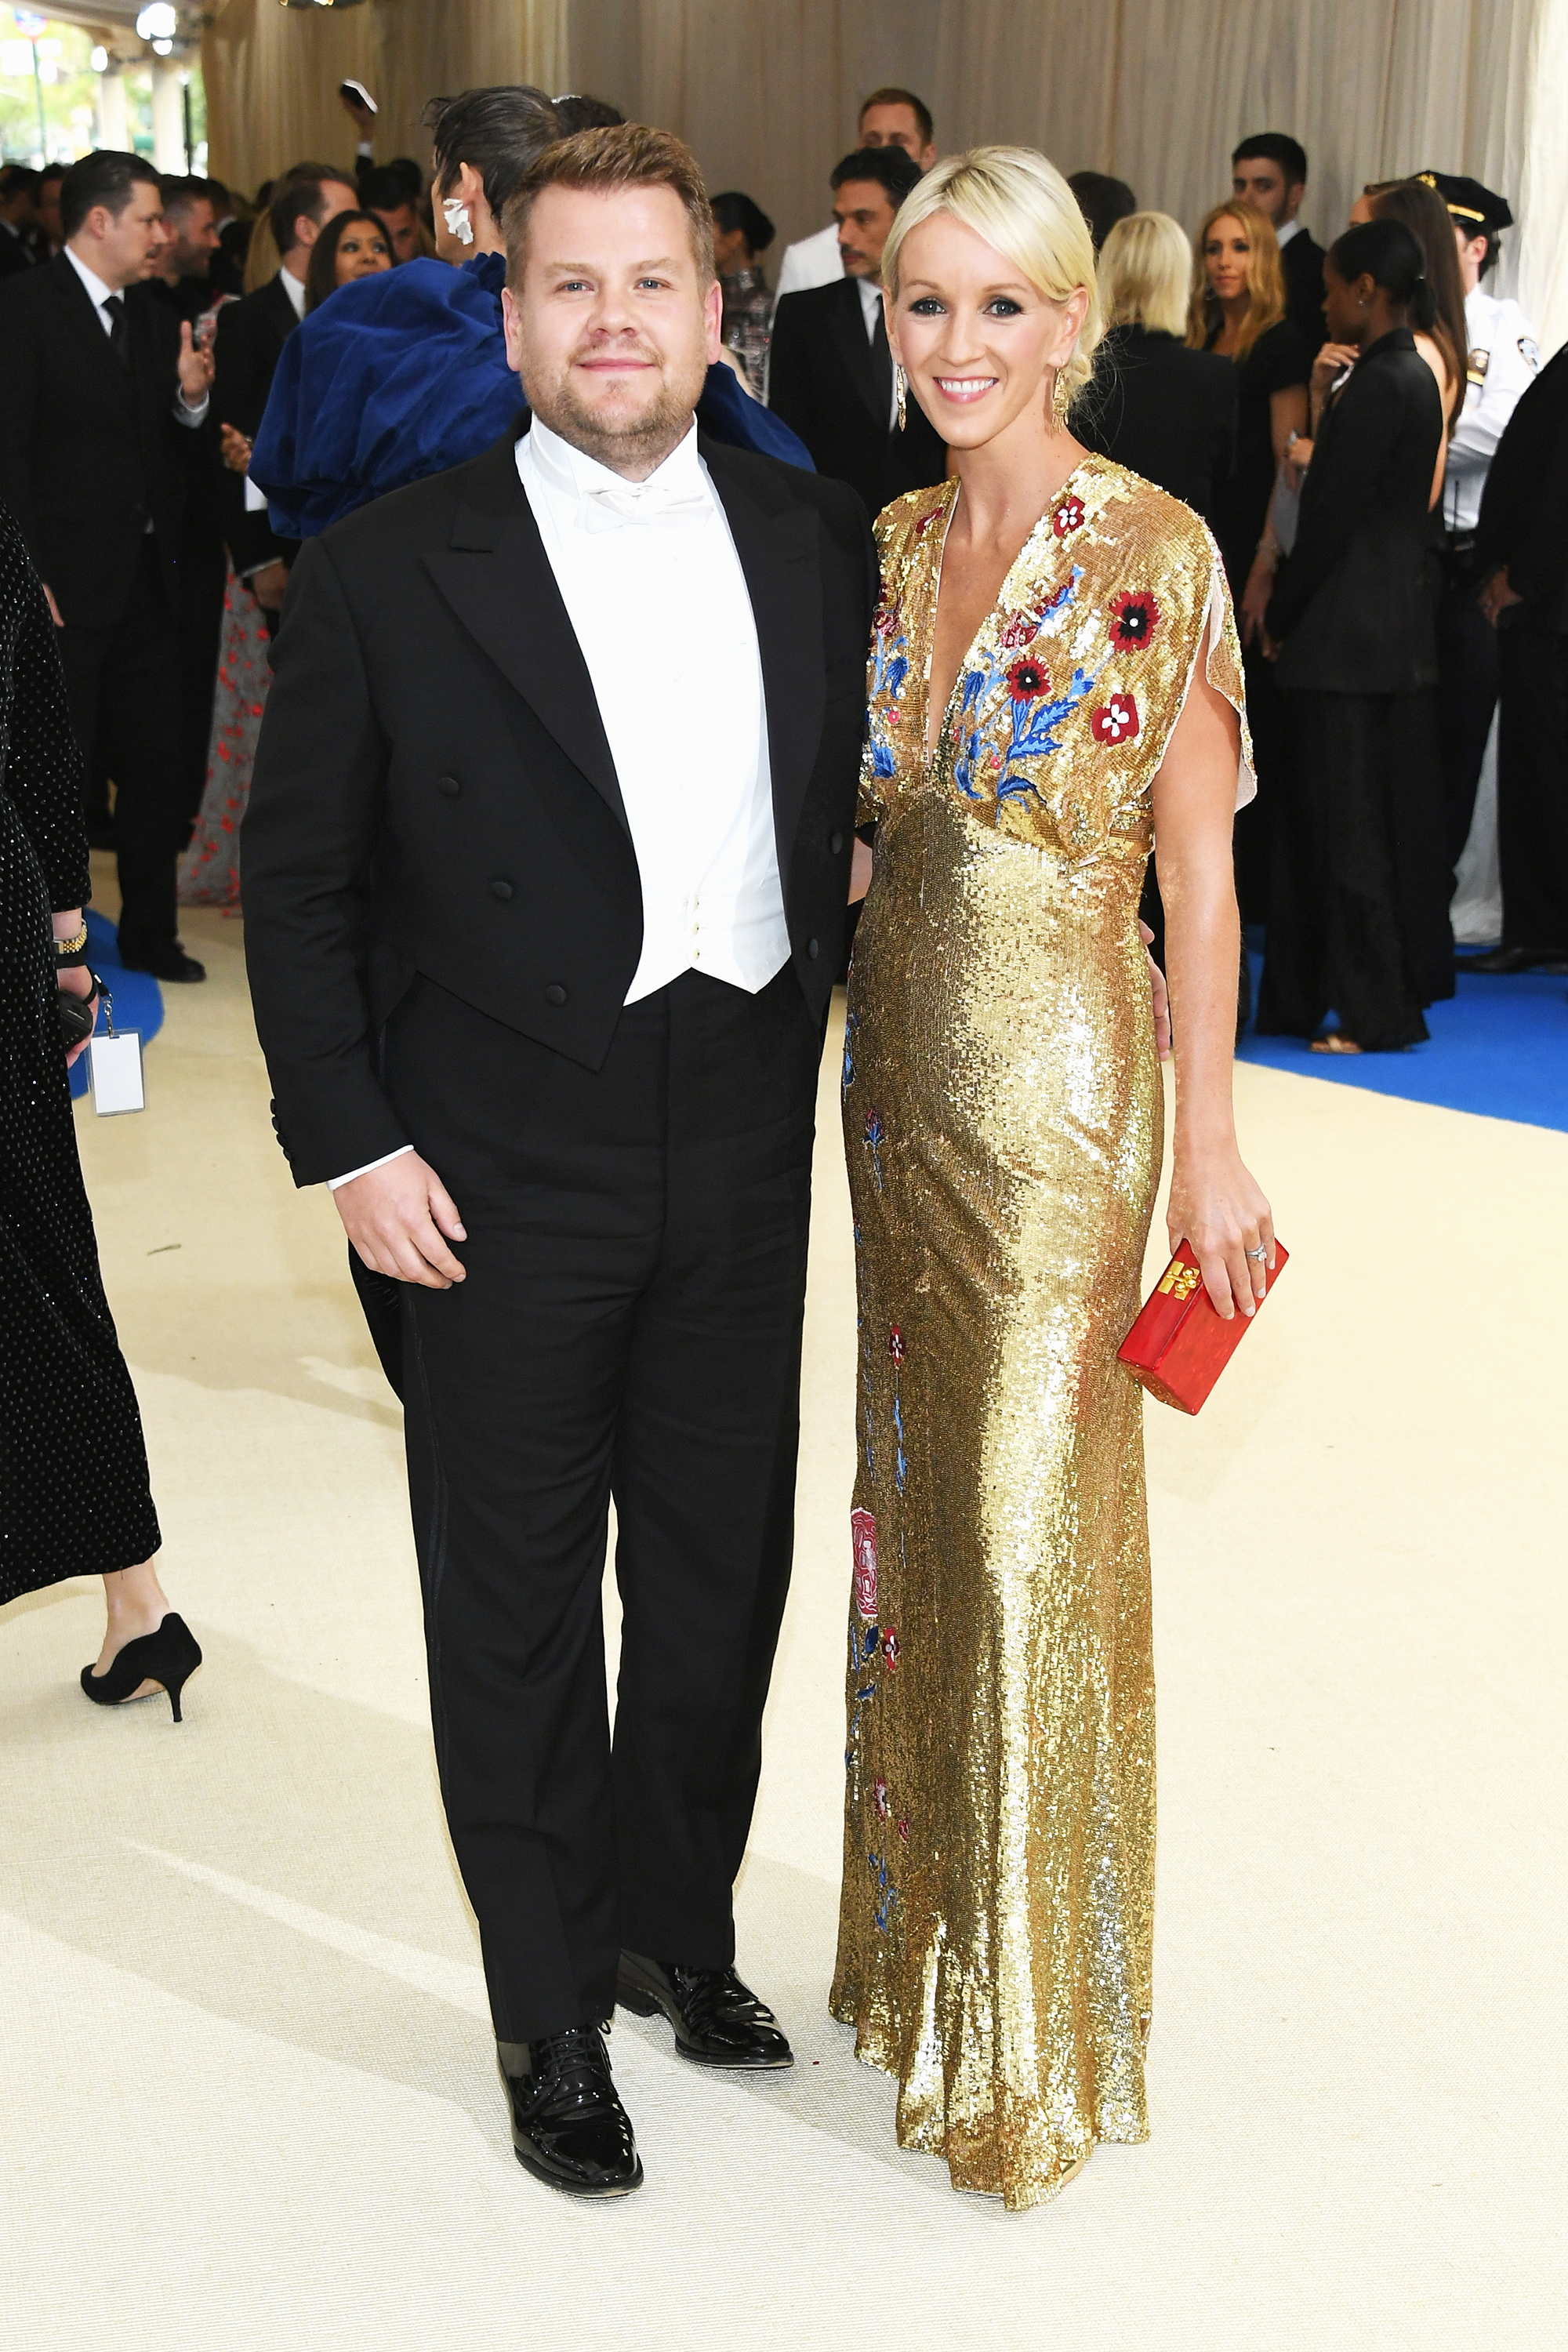 James Corden and Julia Carey attend The Metropolitan Museum of Art's Costume Institute benefit gala celebrating the opening of the Rei Kawakubo/Comme des Garçons: Art of the In-Between exhibition in New York City, on May 1, 2017.